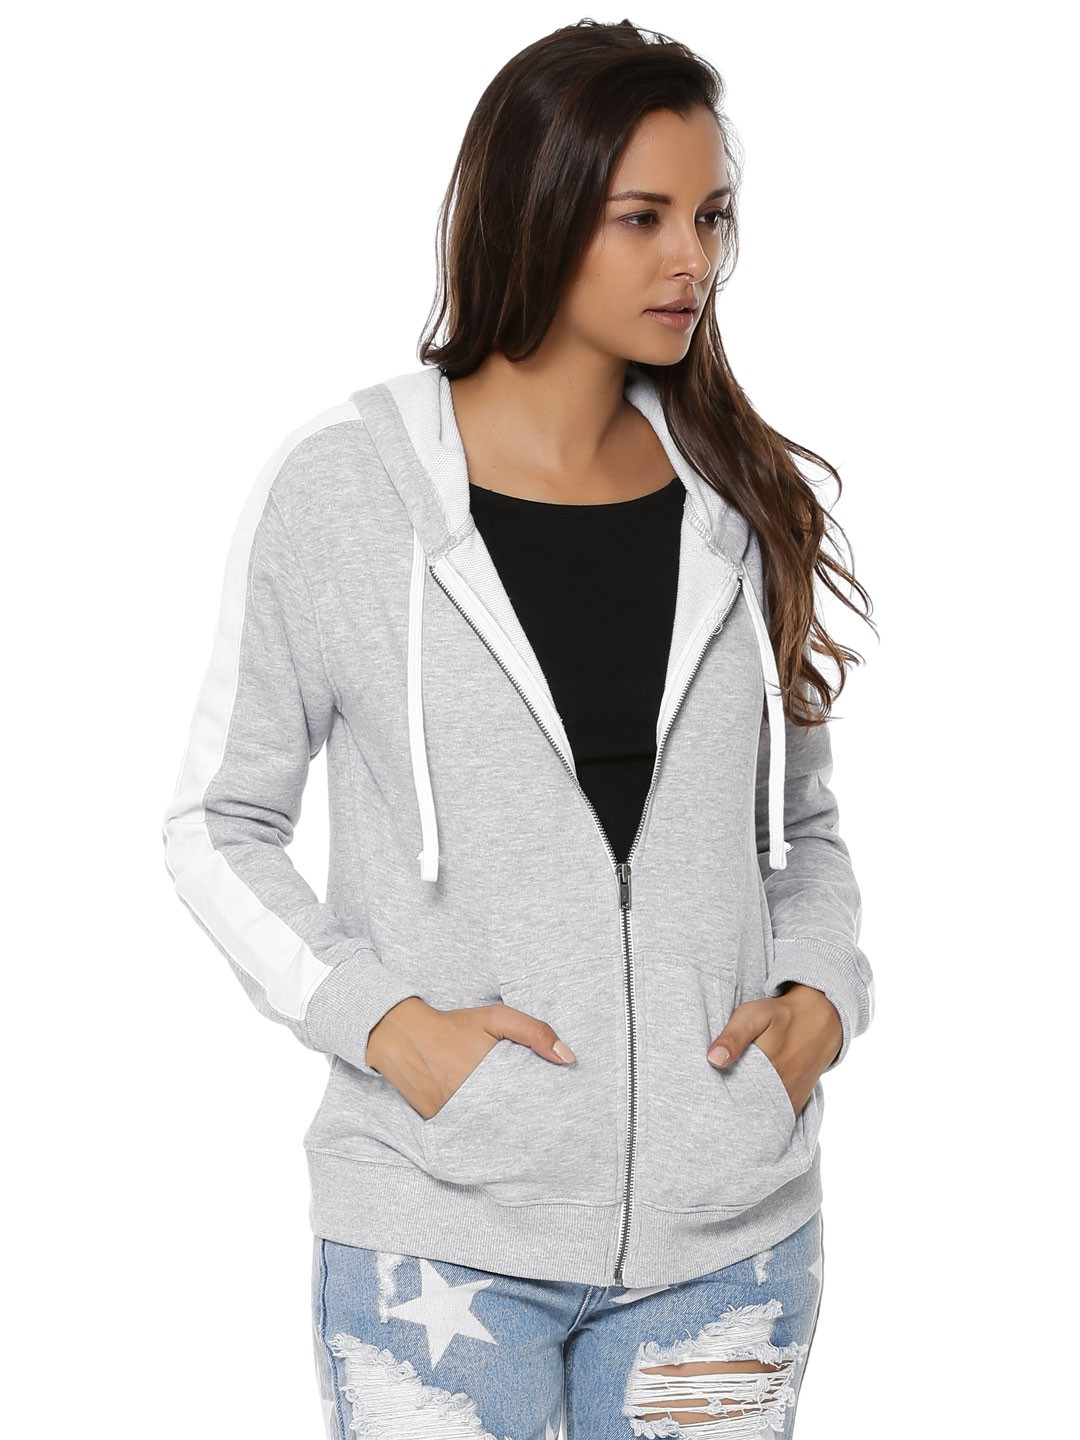 Shop for the latest Sweatshirts & Hoodies cheap fashion online sale at great prices, high quality guaranteed for every Sweatshirts & Hoodies for women at lemkecollier.ga